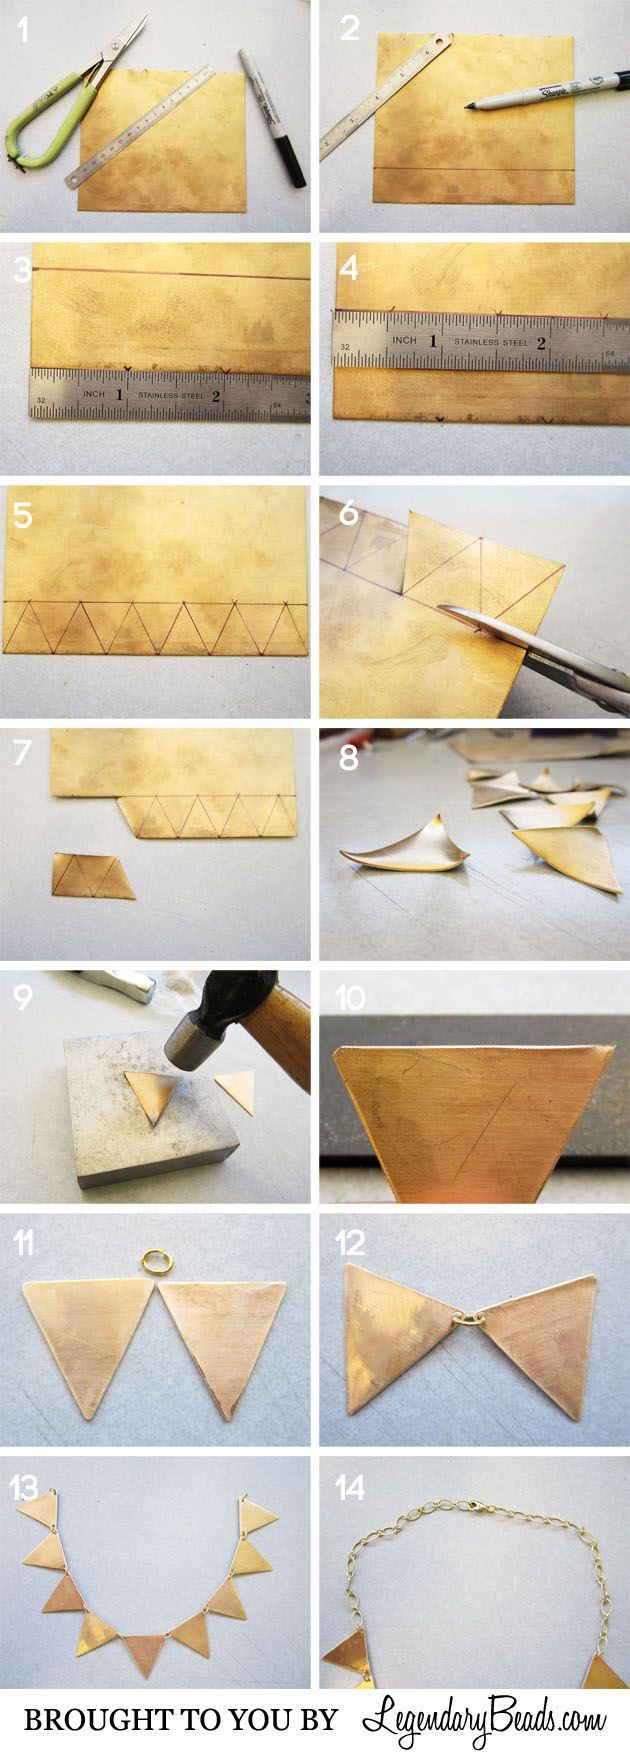 Geometric Necklace Instructions: DIY, Free tutorial - Collana geometrica in ottone